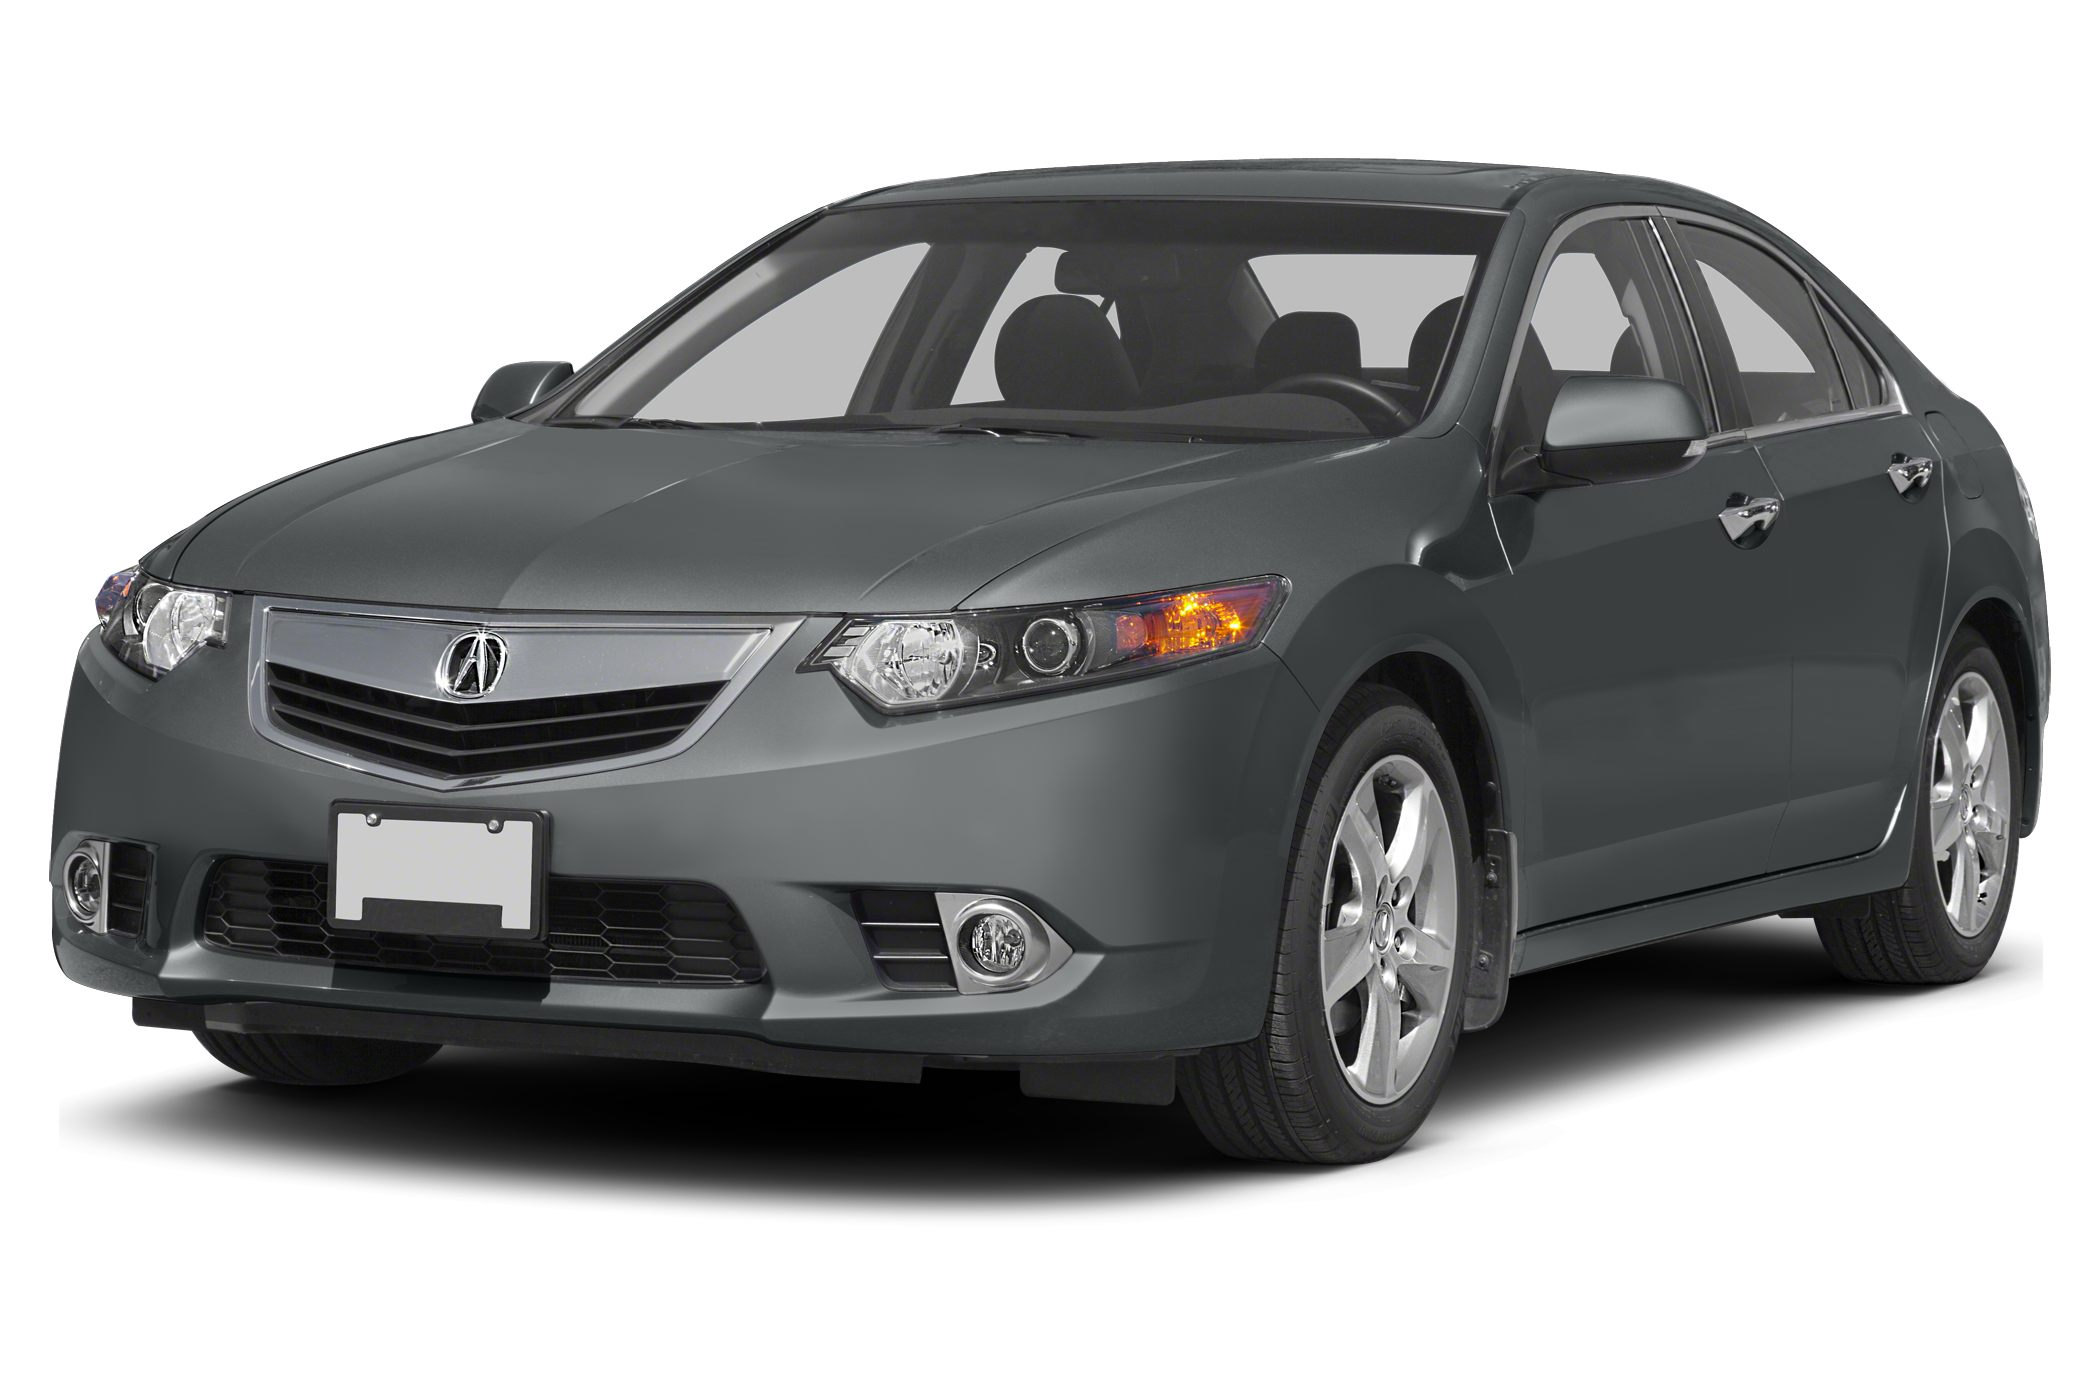 2013 Acura TSX 24 Visit Best Auto Group online at bronxbestautocom to see more pictures of this